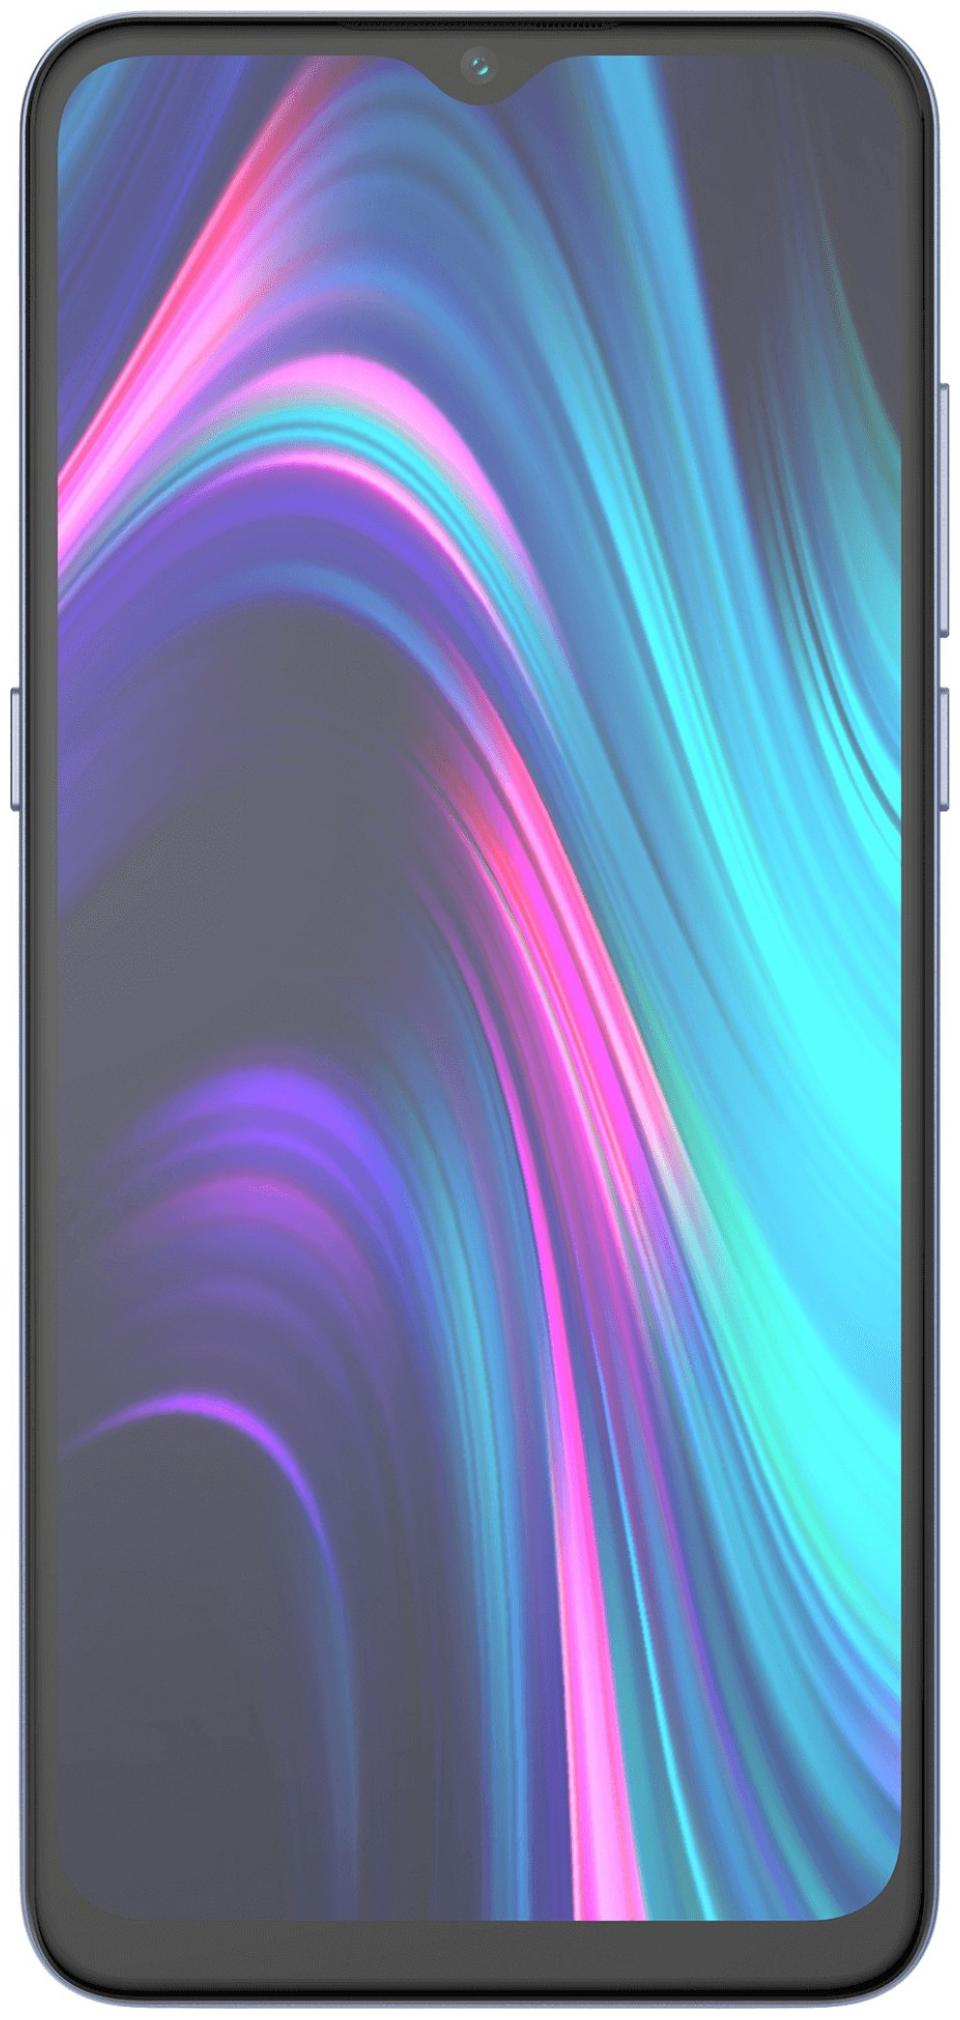 https://assetscdn1.paytm.com/images/catalog/product/M/MO/MOBMICROMAX-IN-M-S-136429A2456996/1613652115683_1..jpg